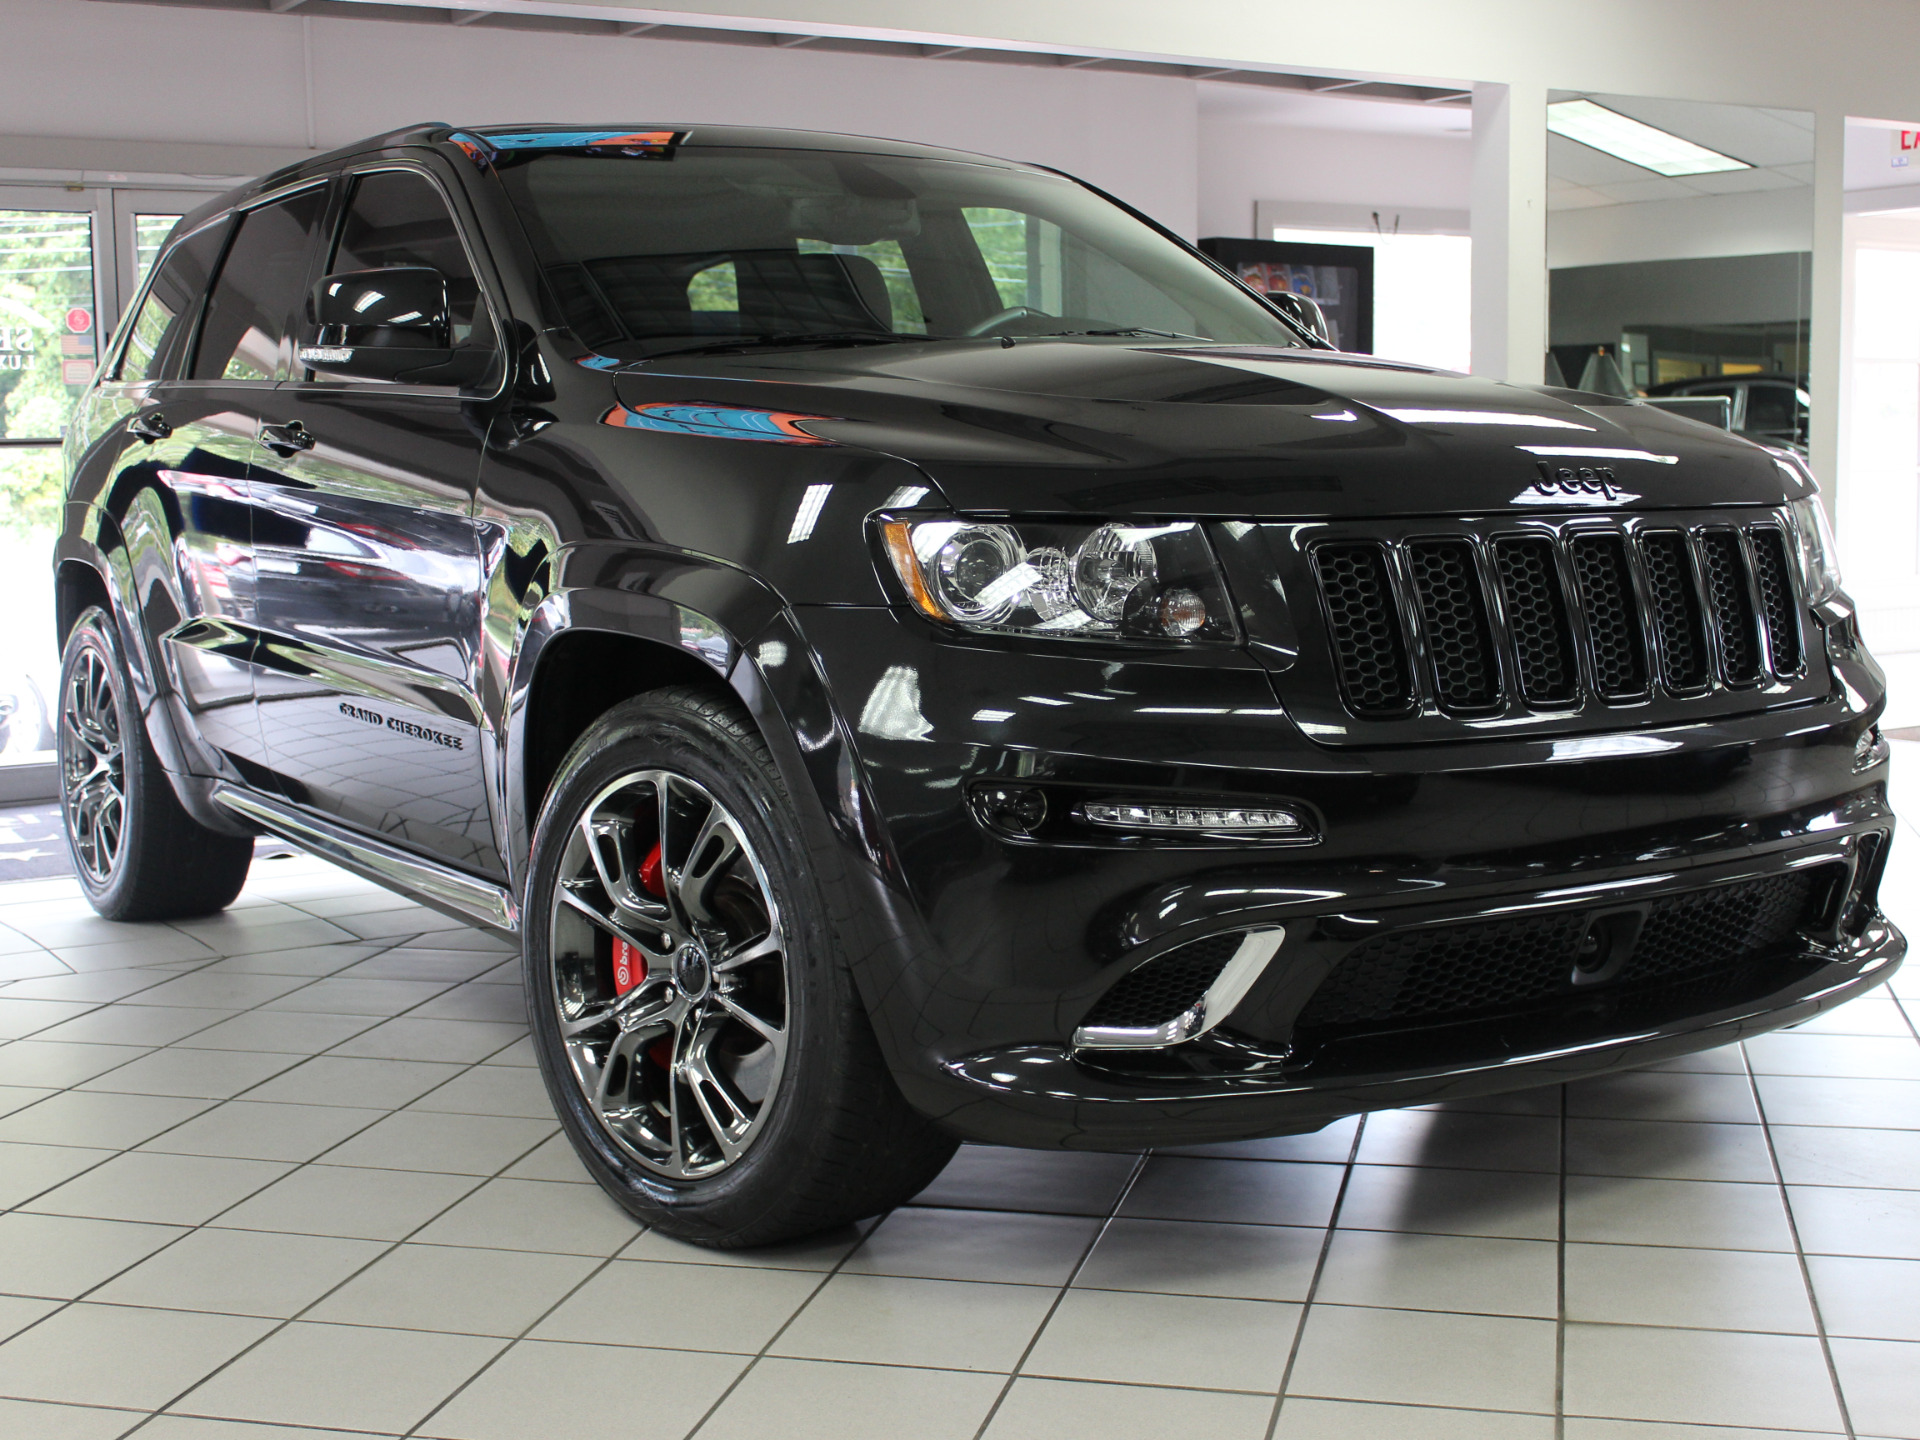 used 2013 jeep grand cherokee srt8 marietta ga. Black Bedroom Furniture Sets. Home Design Ideas